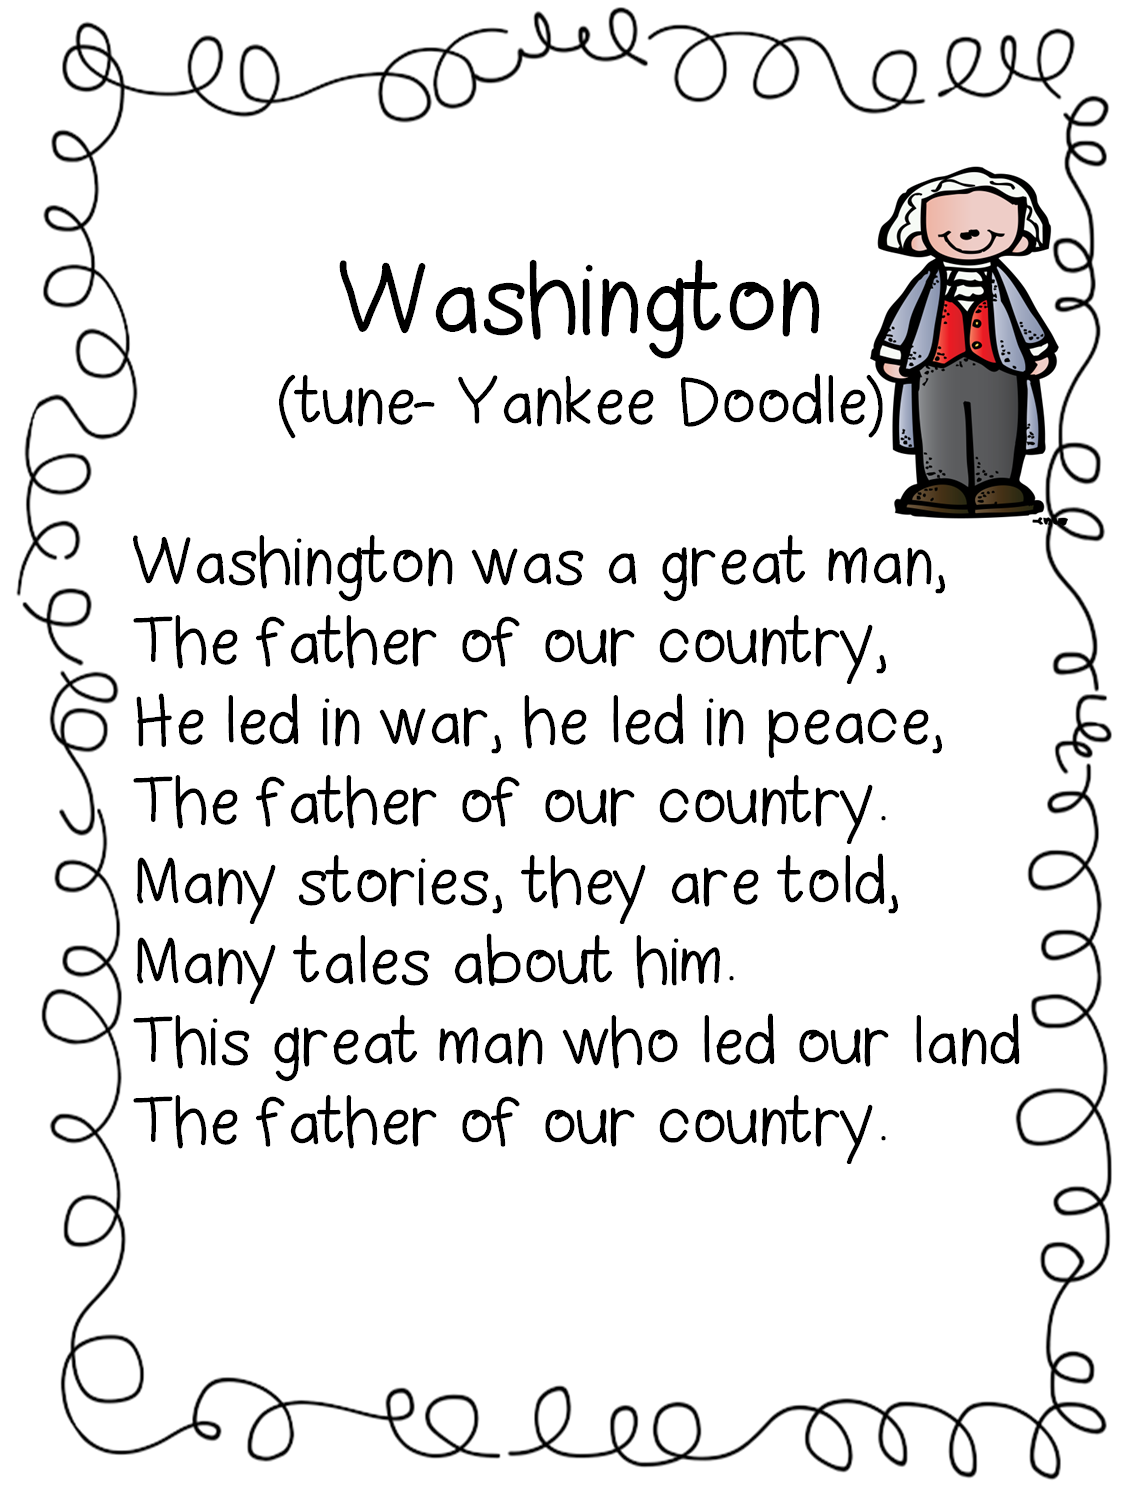 first grade wow washington poem social studies first grade wow washington poem